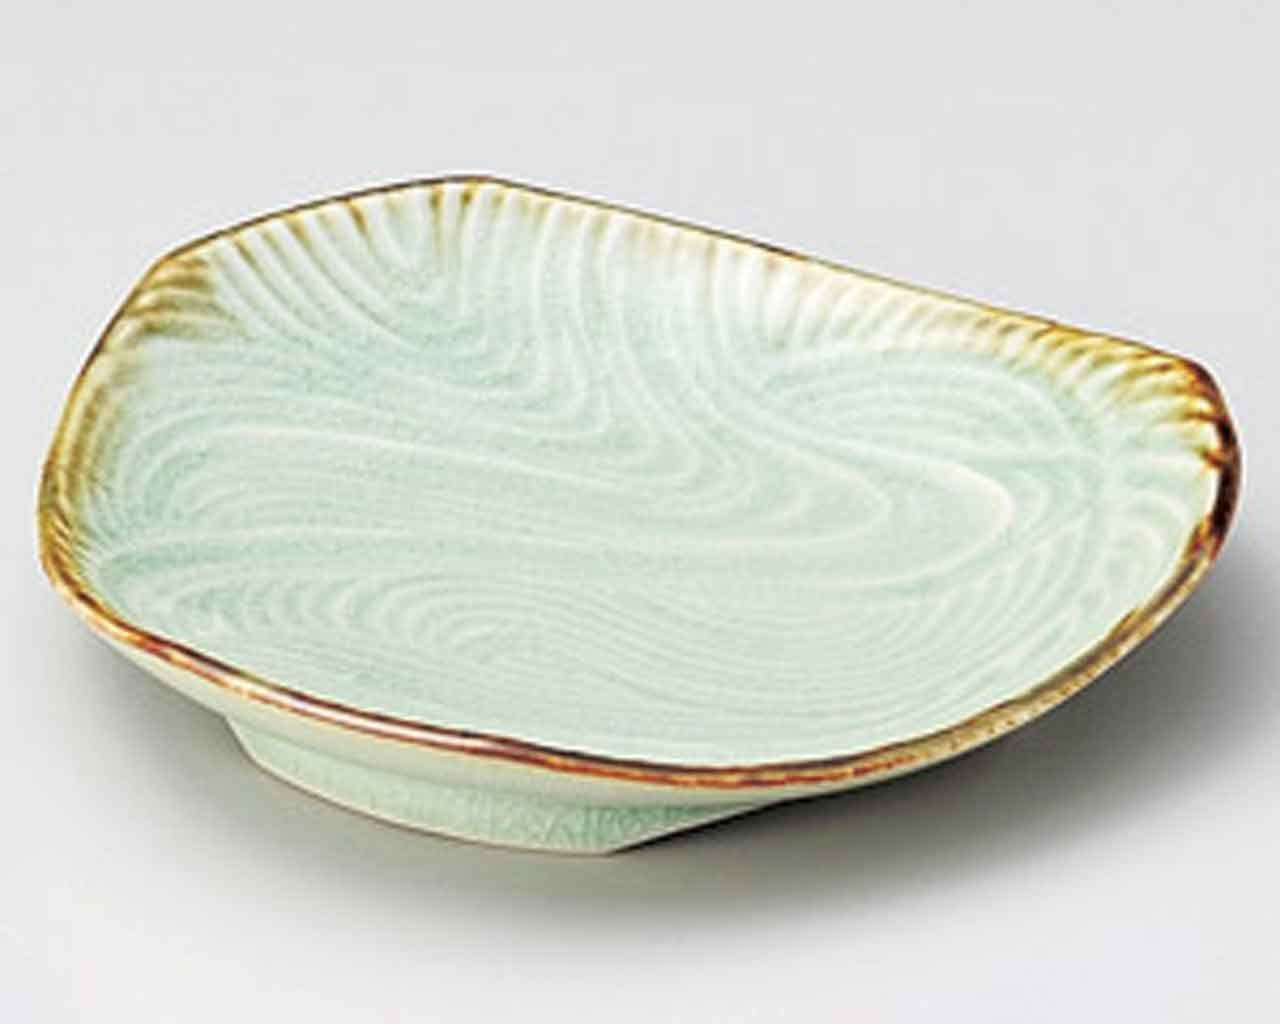 Suigyoku Ryusui 5.7inch Set of 5 Small Plates Green porcelain Made in Japan